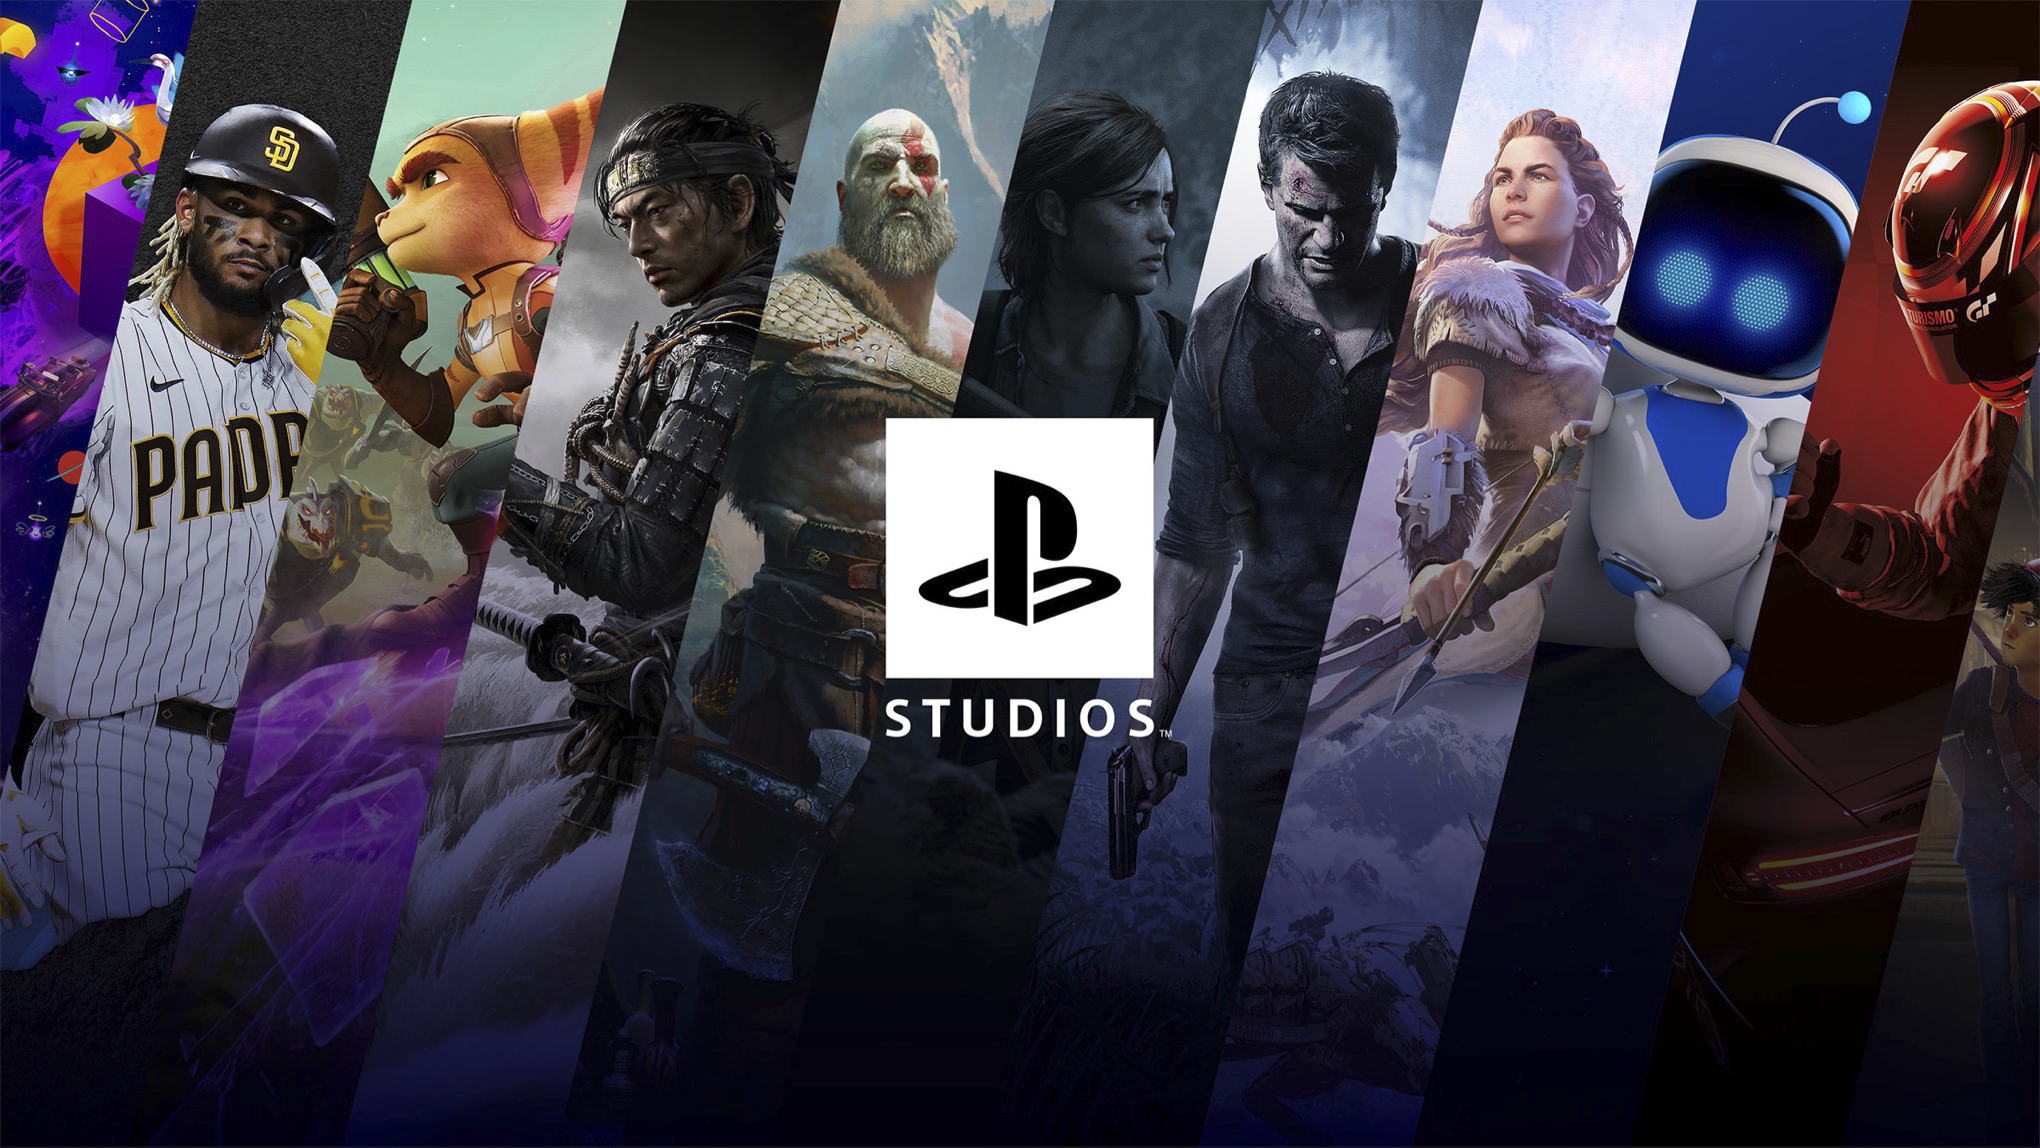 Sony is Looking Forward to Working With Nixxes to Release More PlayStation Titles on PC, Jim Ryan Says